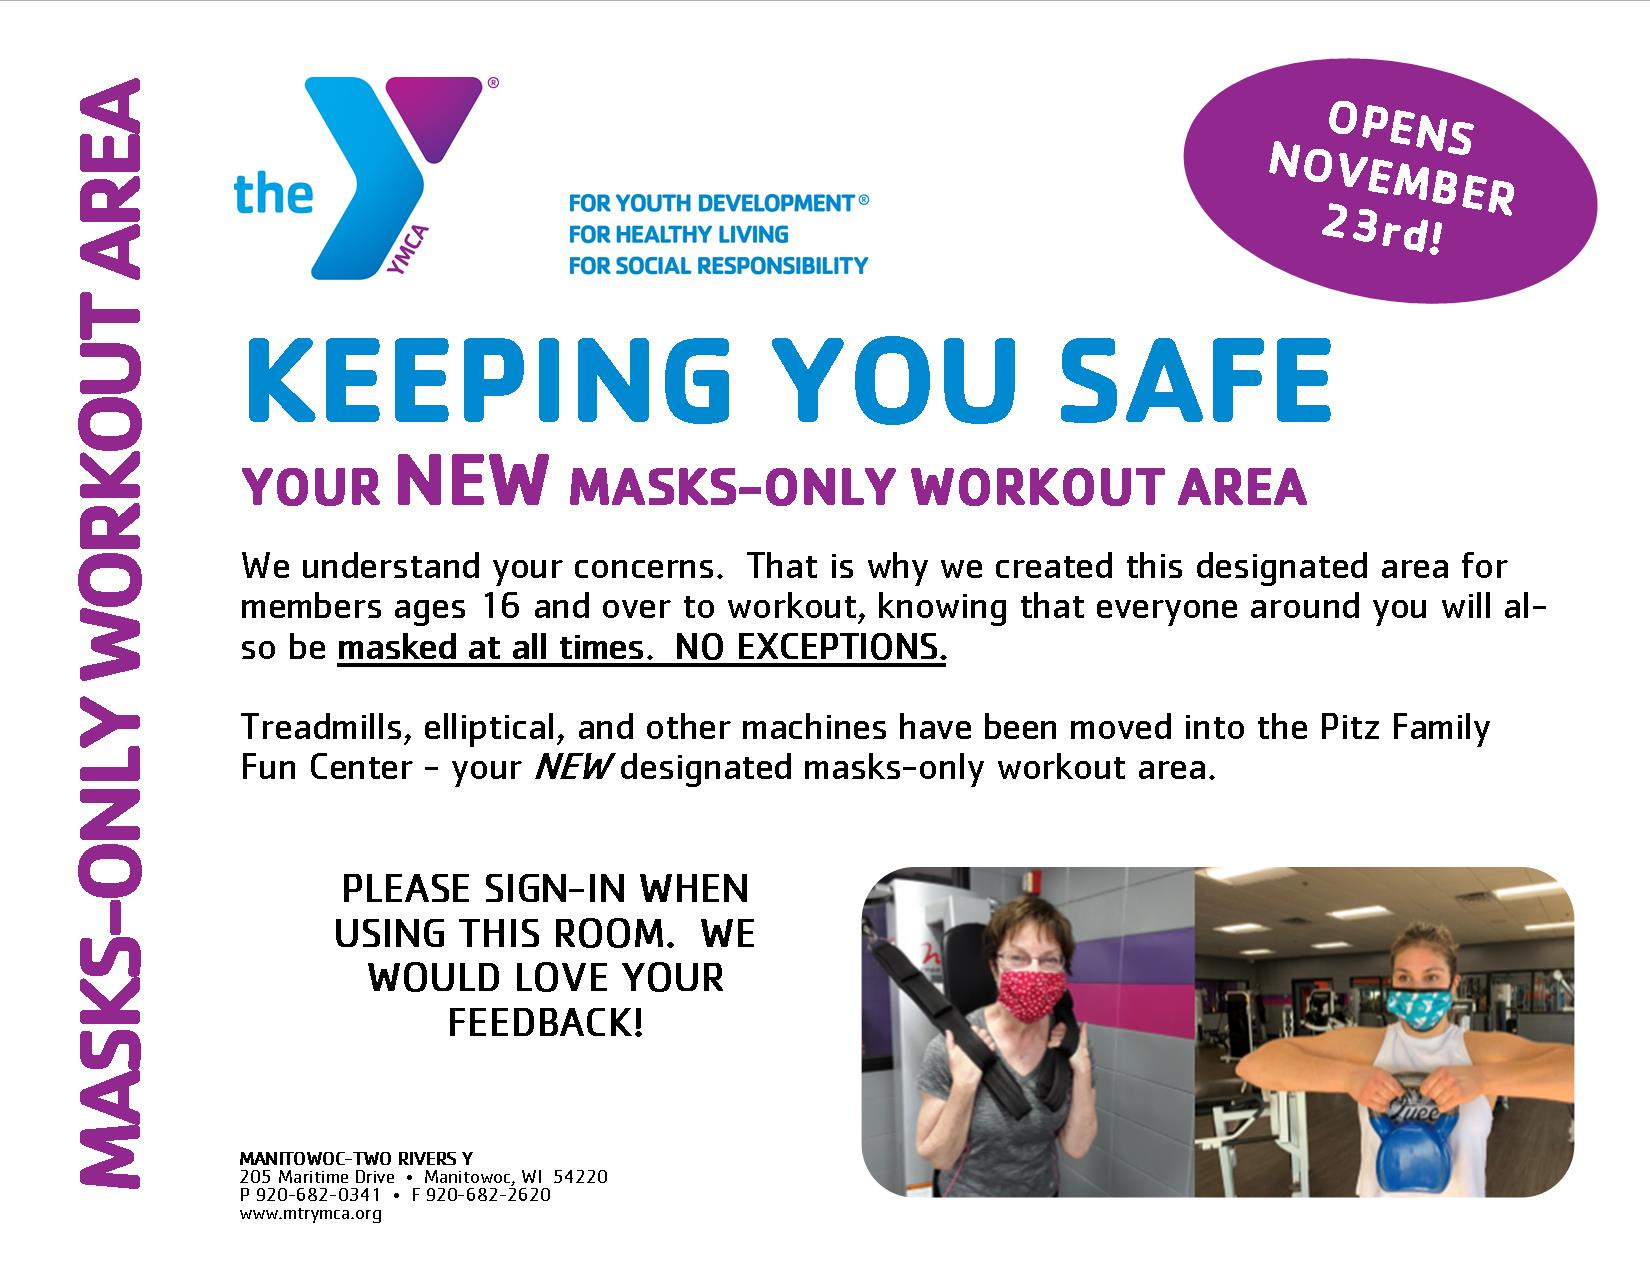 http://mtrymca.org/sites/mtrymca.org/assets/images/programs/Masked-Only-Workout-Area-flyer.jpg